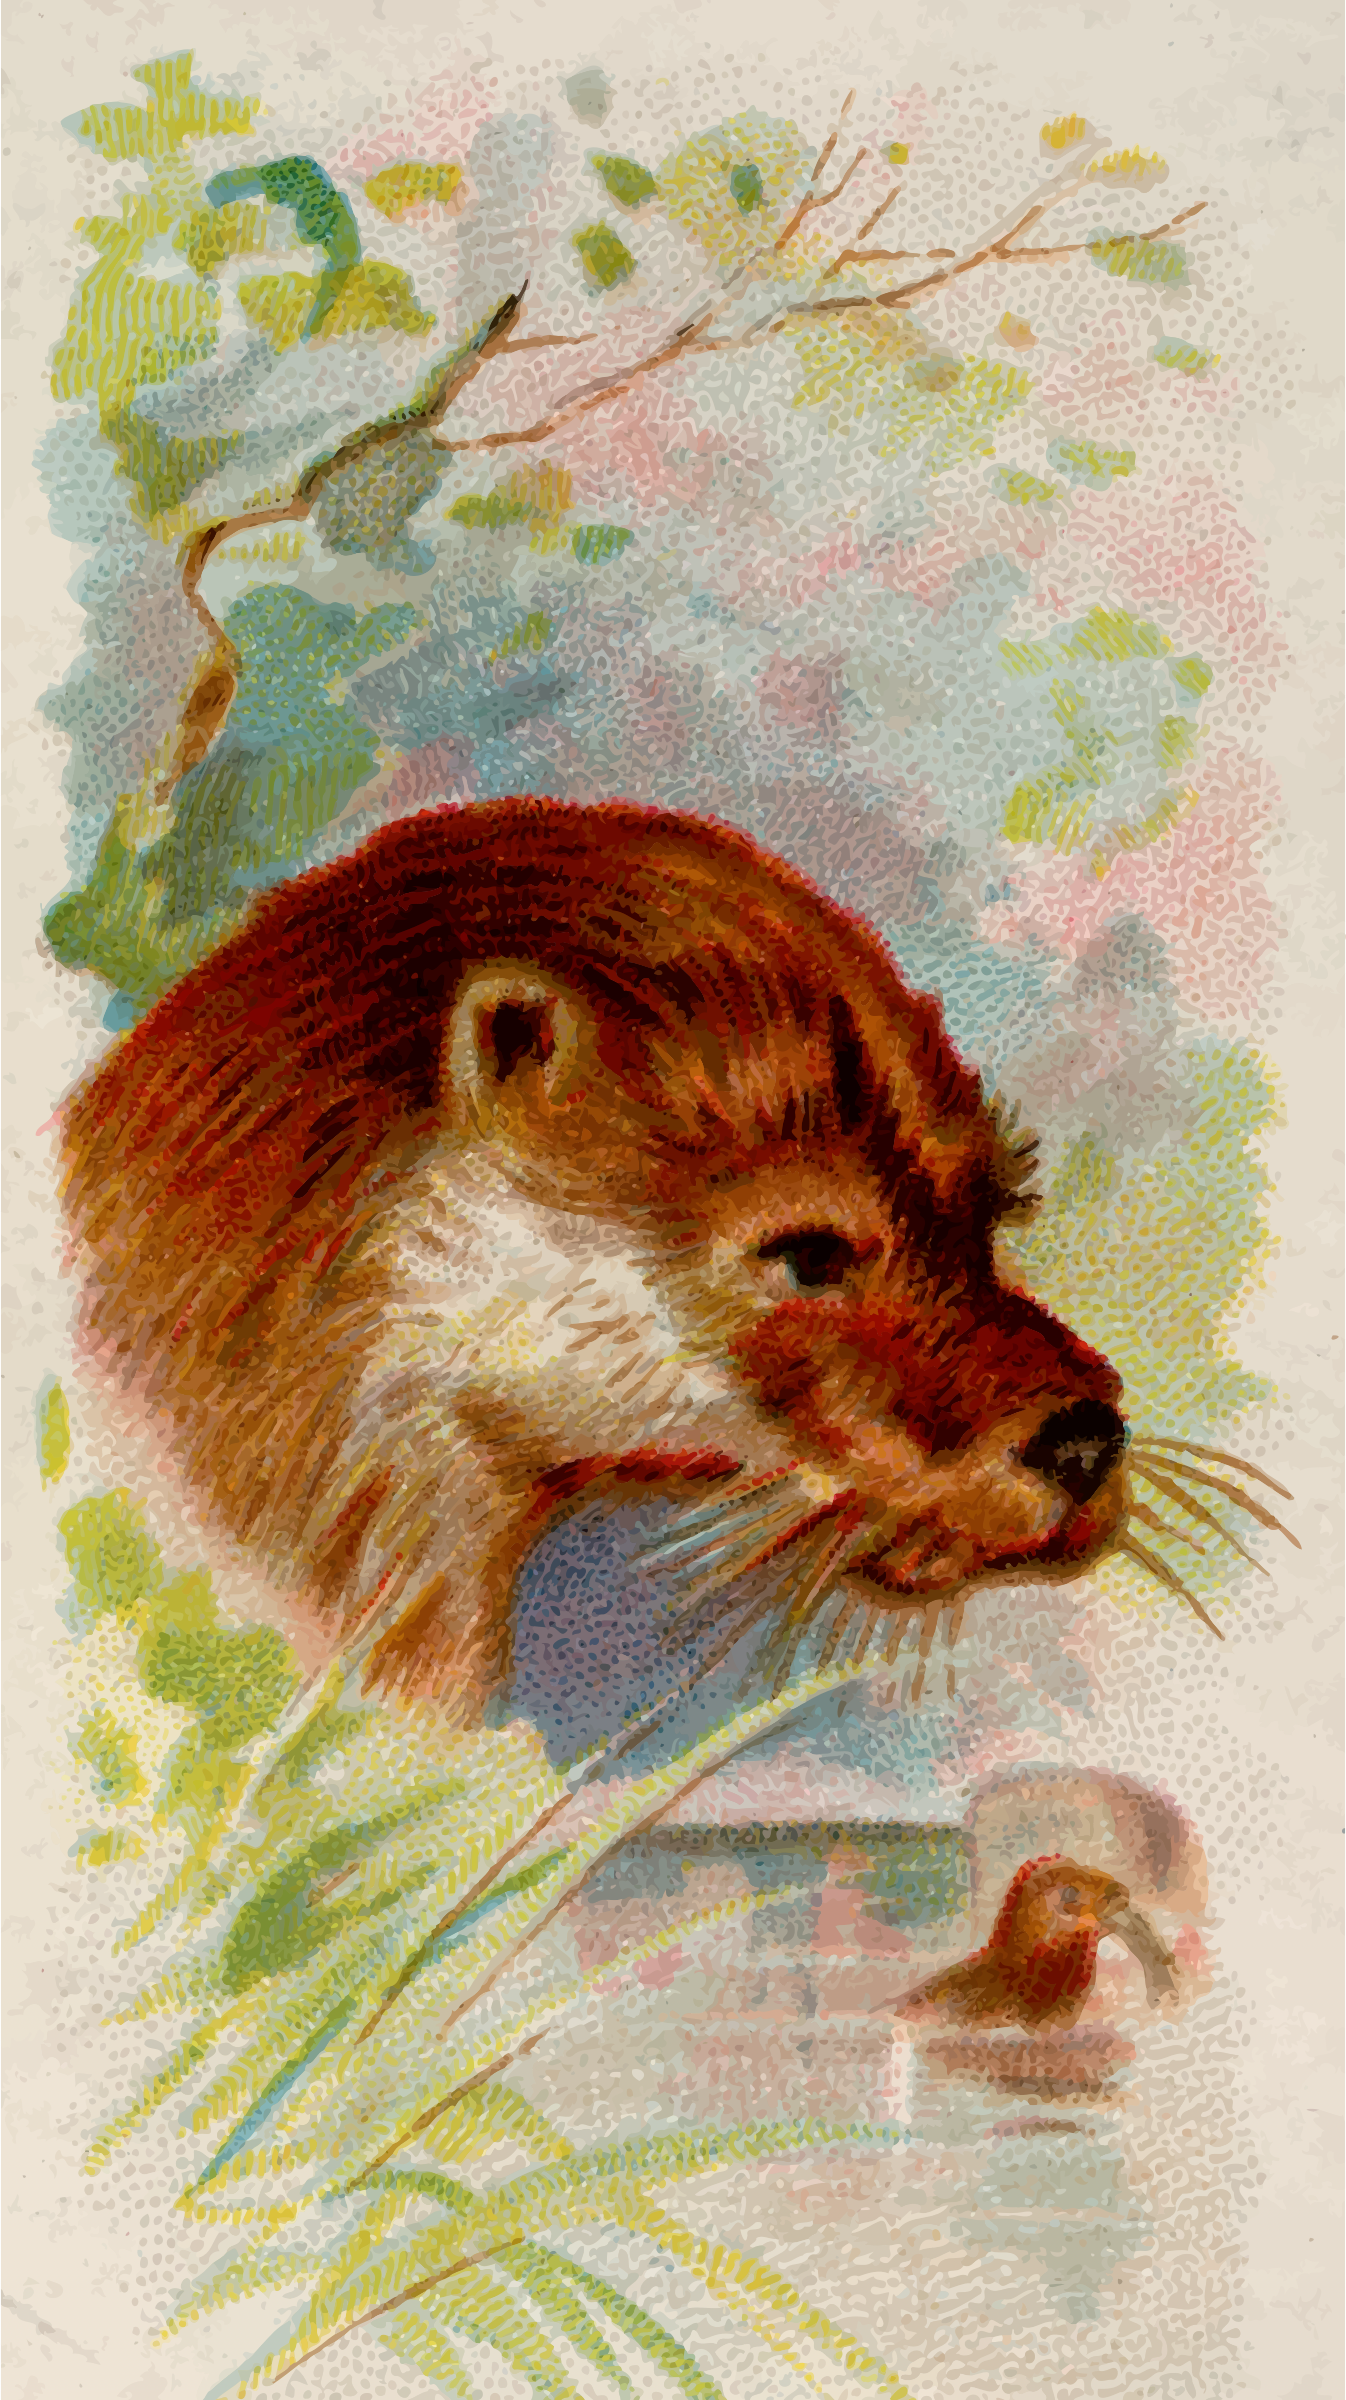 Cigarette card - Otter by Firkin